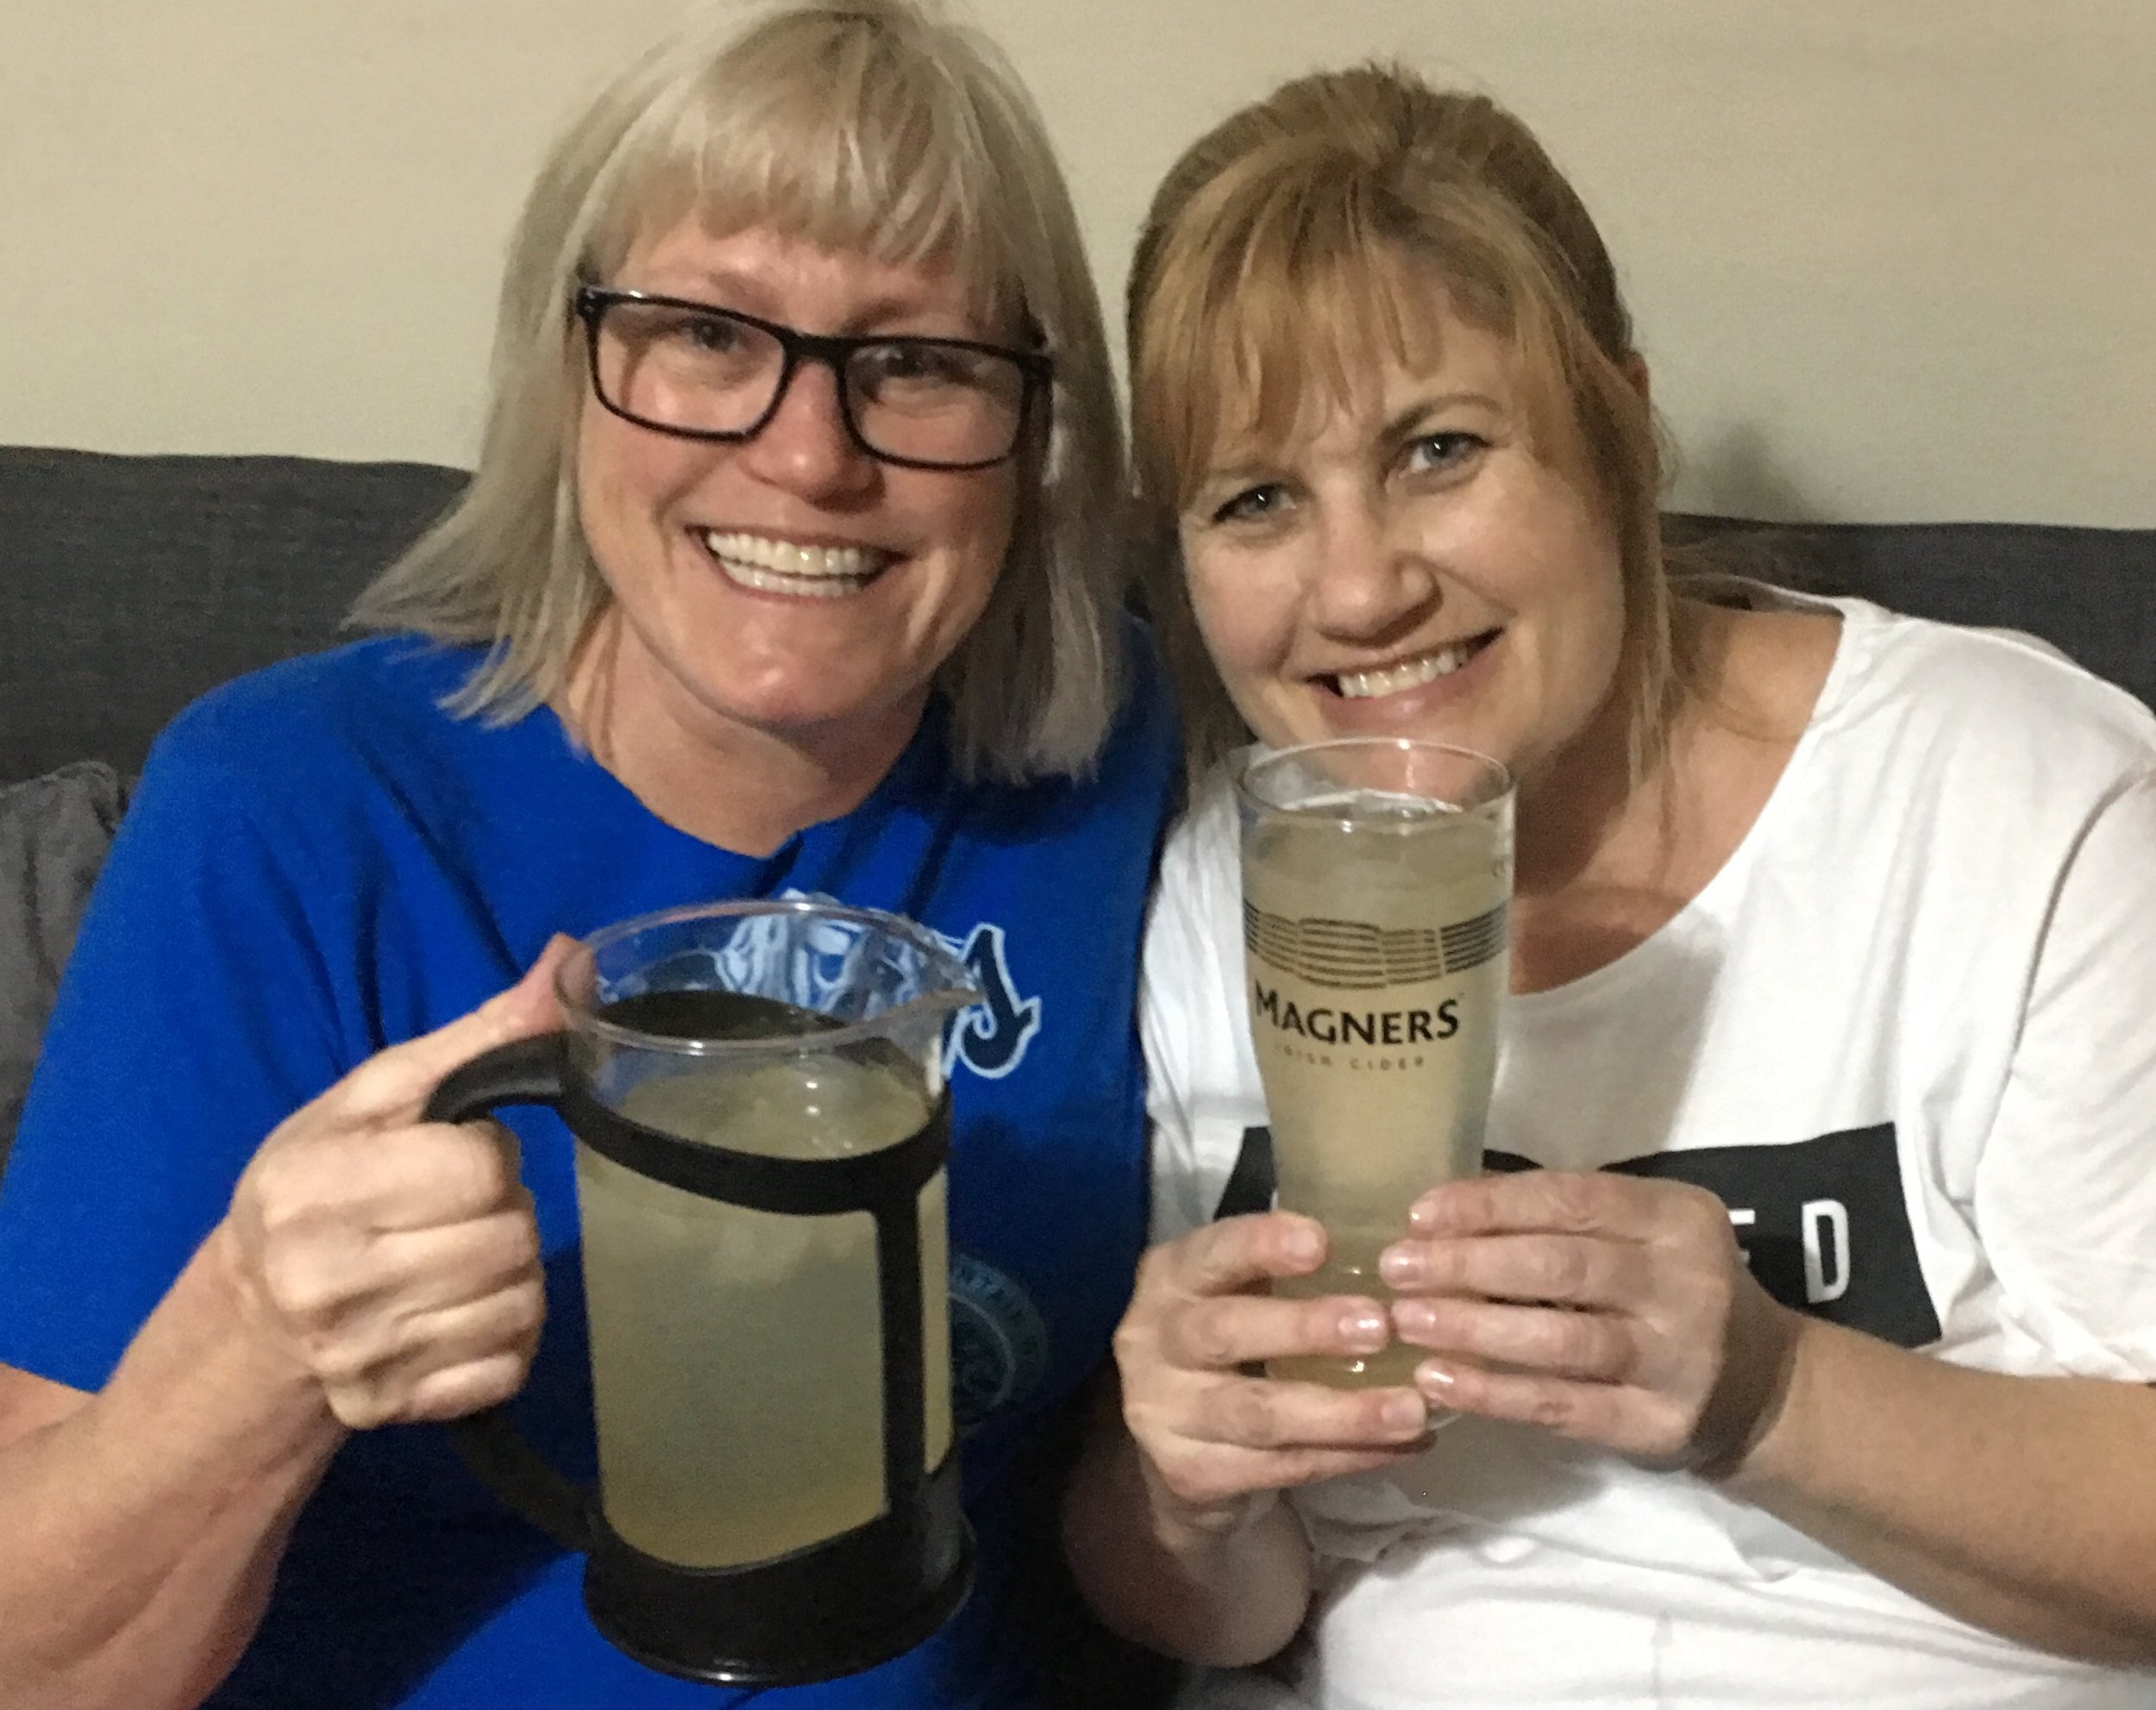 Cherilyn thought she was picking the largest glass until I found the coffee press container! We were sipping on gin and juice in our jammies. Hers freshly bought since her luggage was lost.